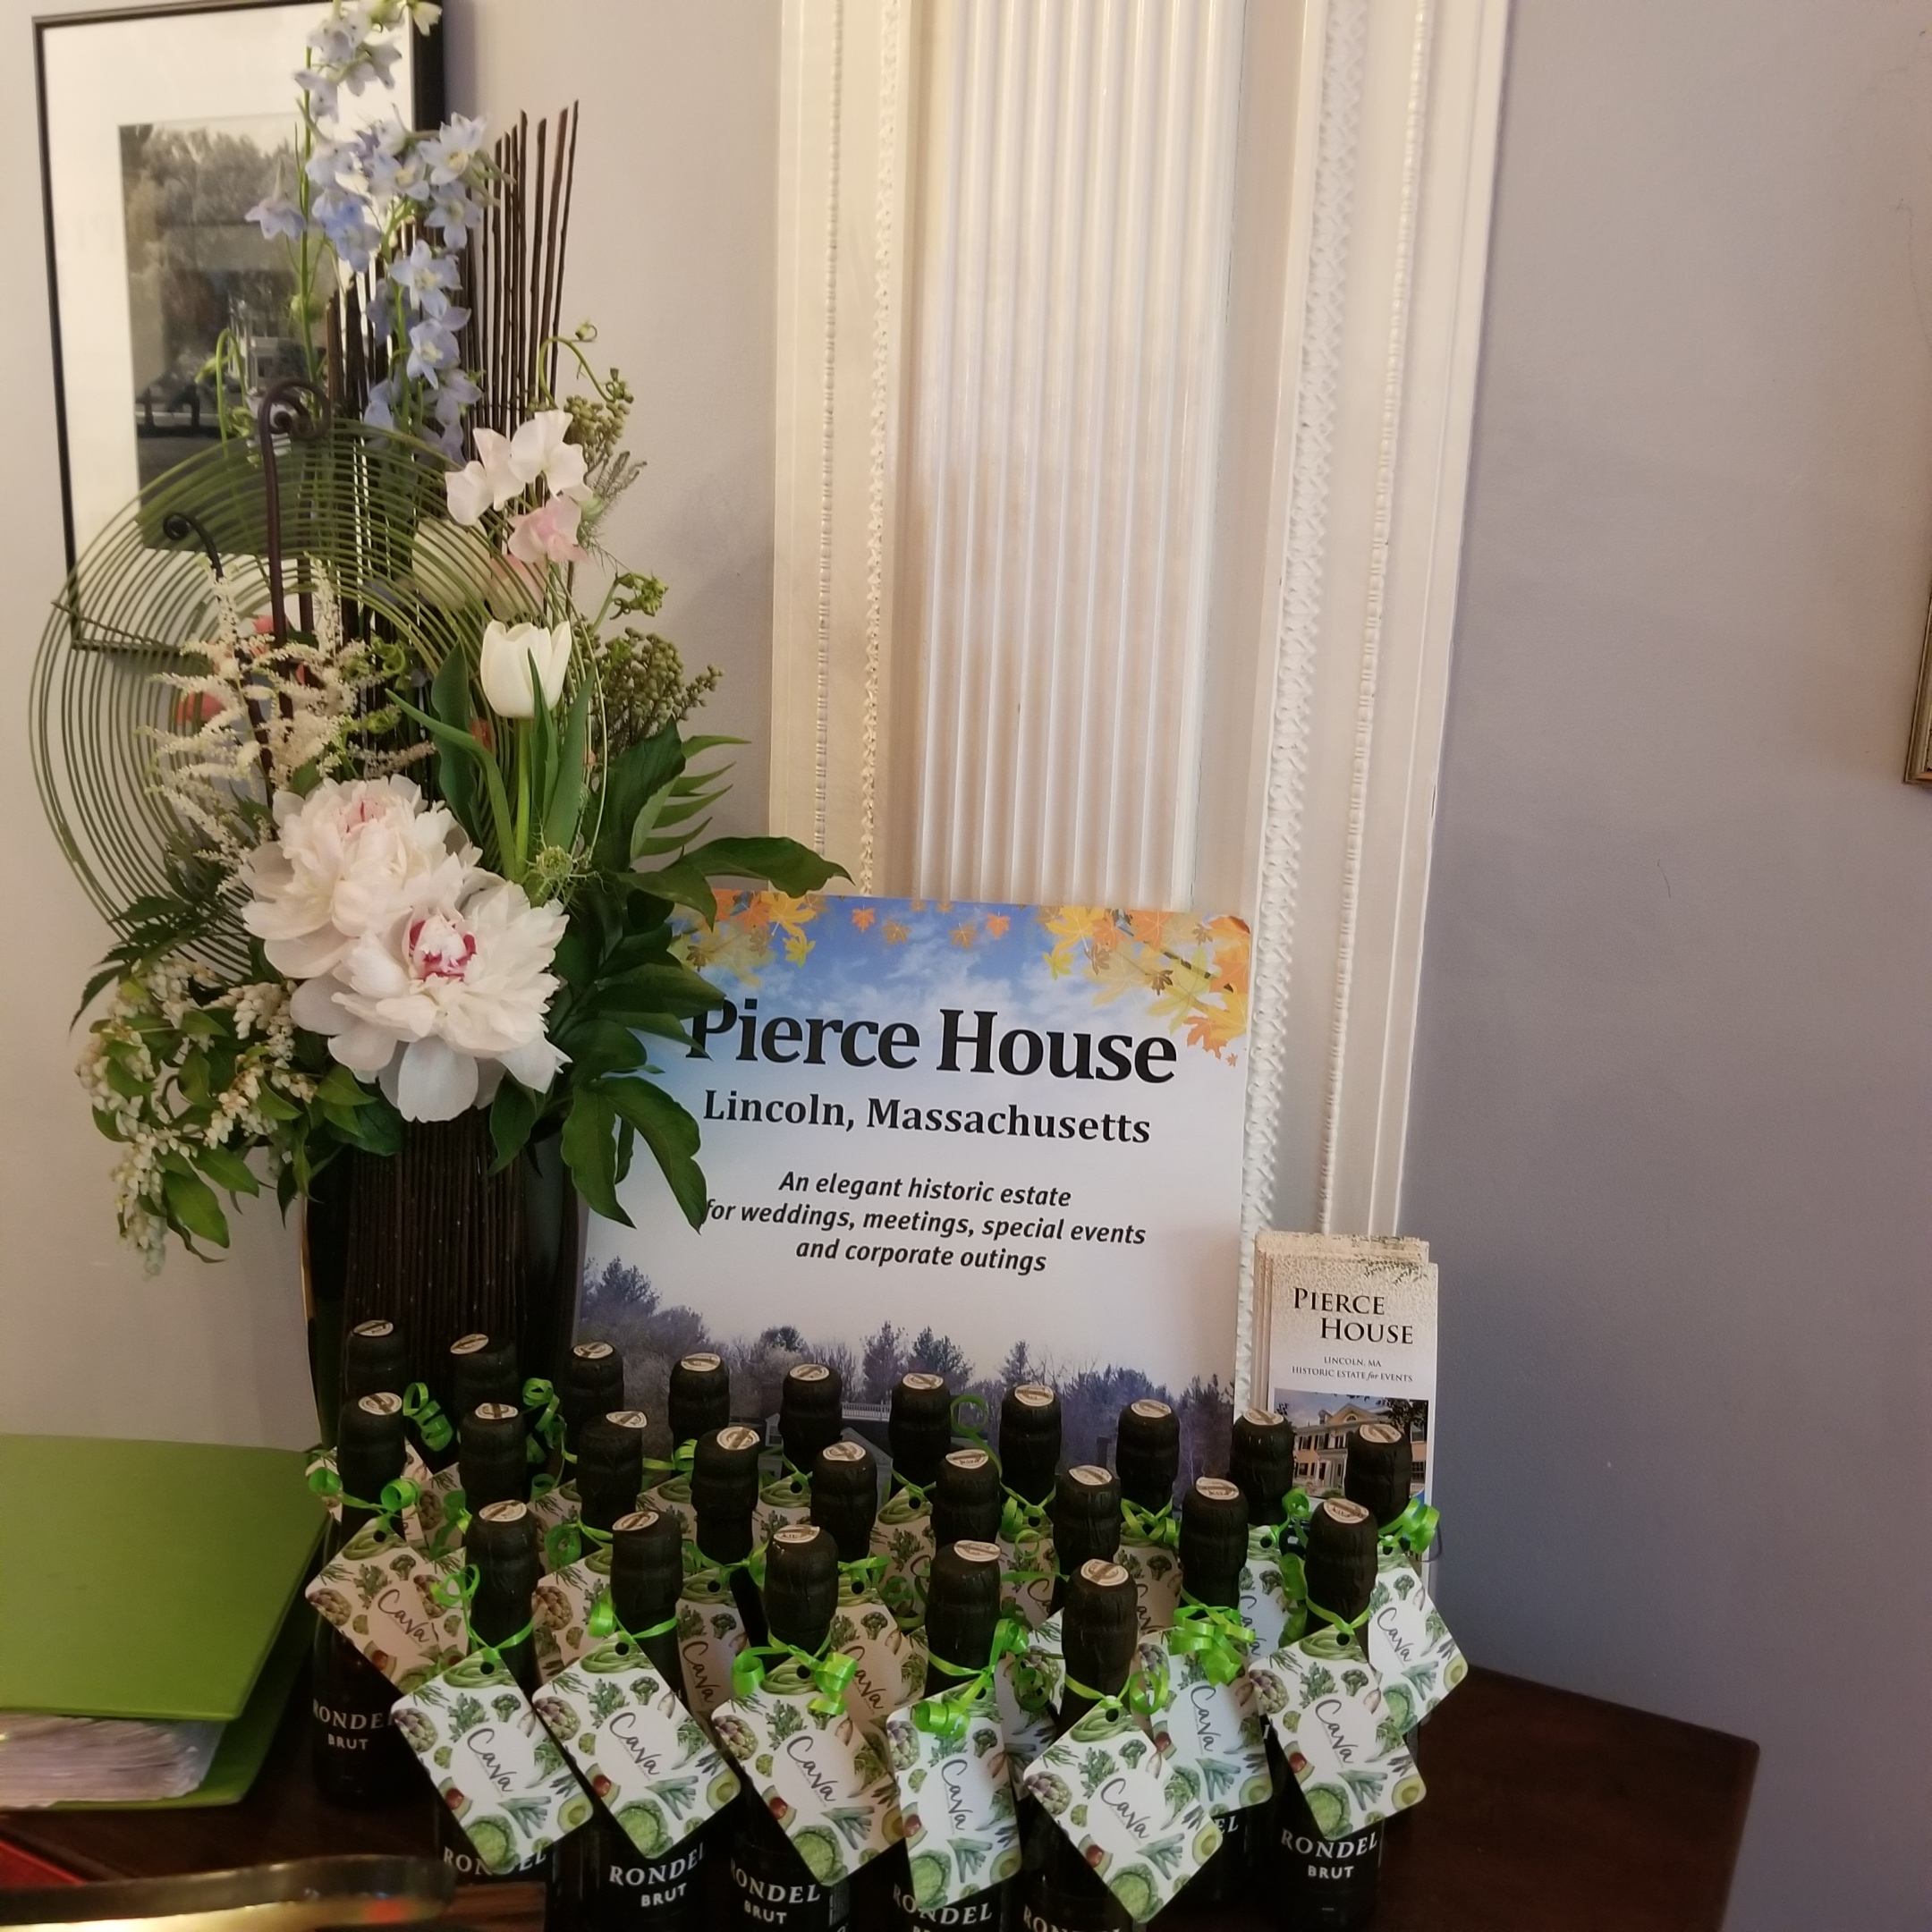 Welcome table design at Pierce House, Lincoln MA for NACE event. Catering by Cava Catering and Events. Organized by Luba Mitnik at Primavera Dreams.